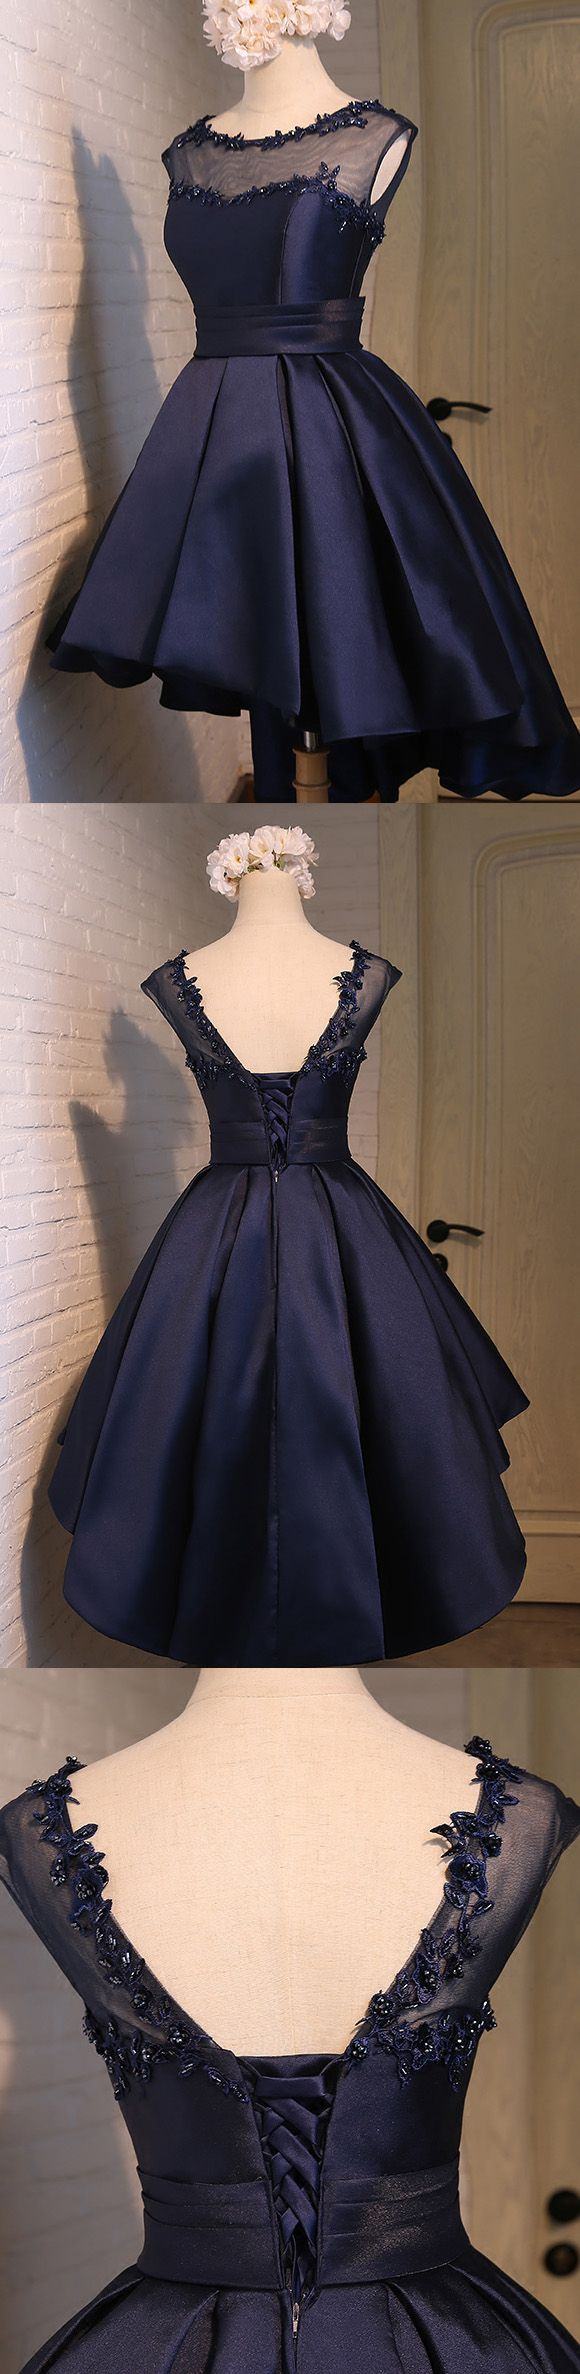 Round homecoming dresses navy short prom dresses homecoming